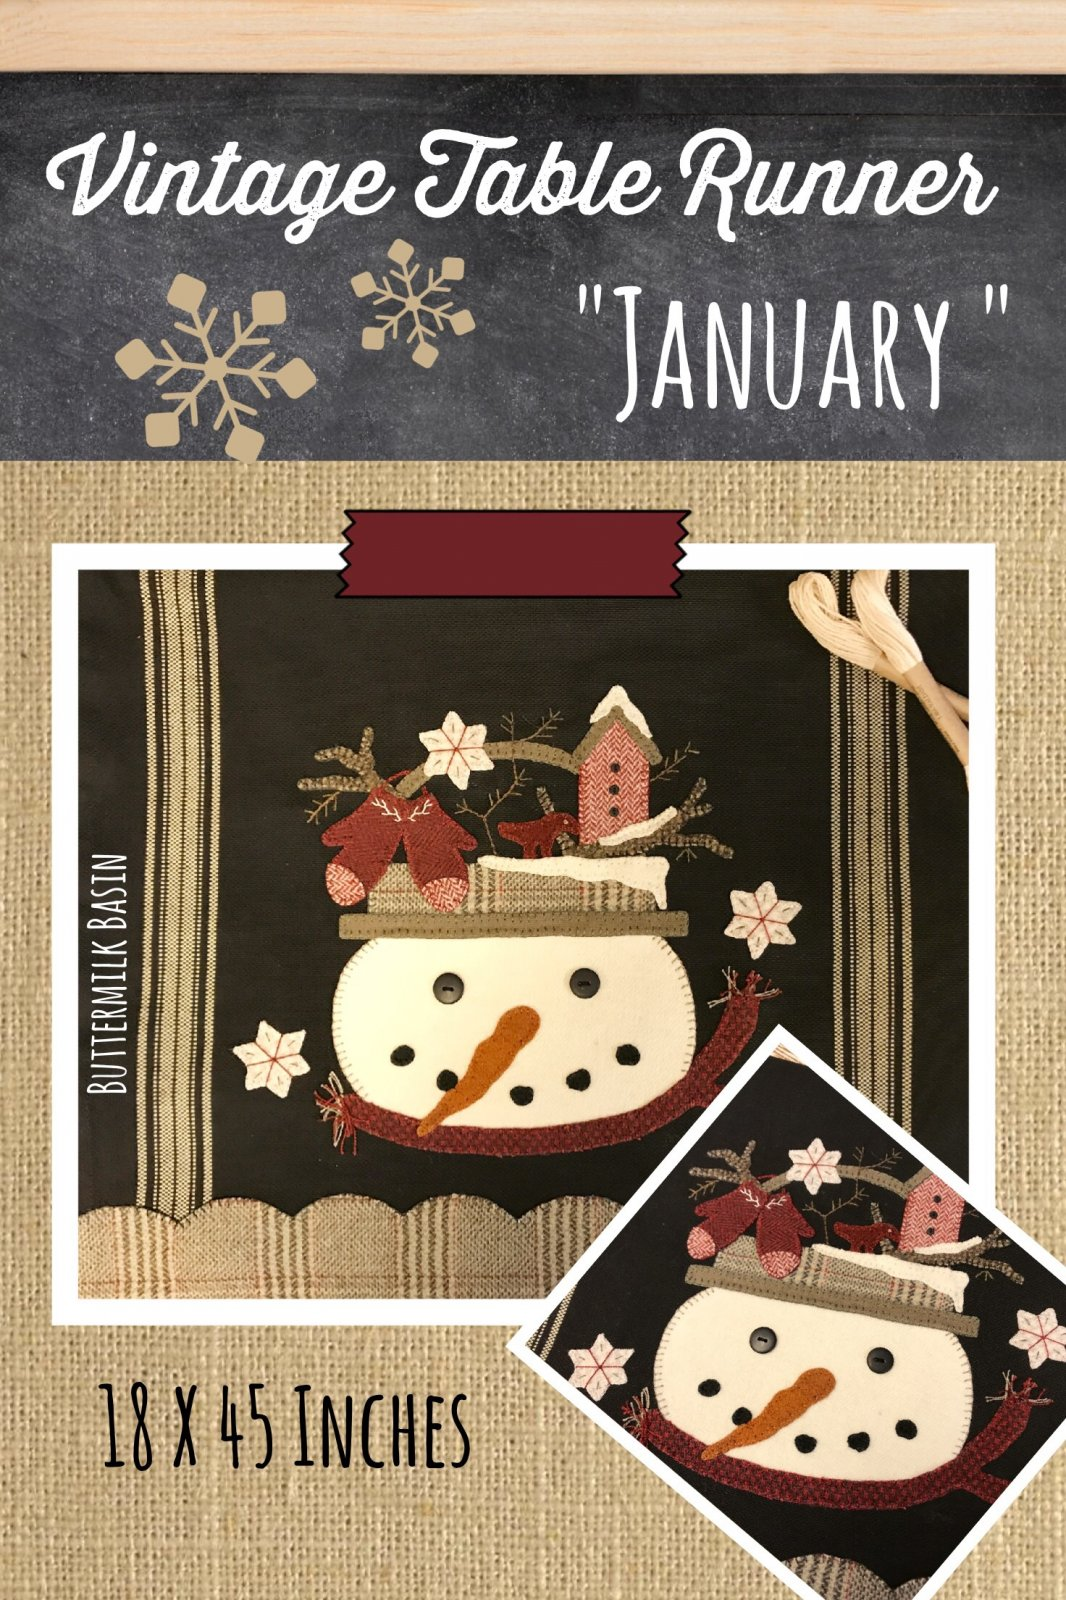 Vintage Table Runner thru the Year January Pattern